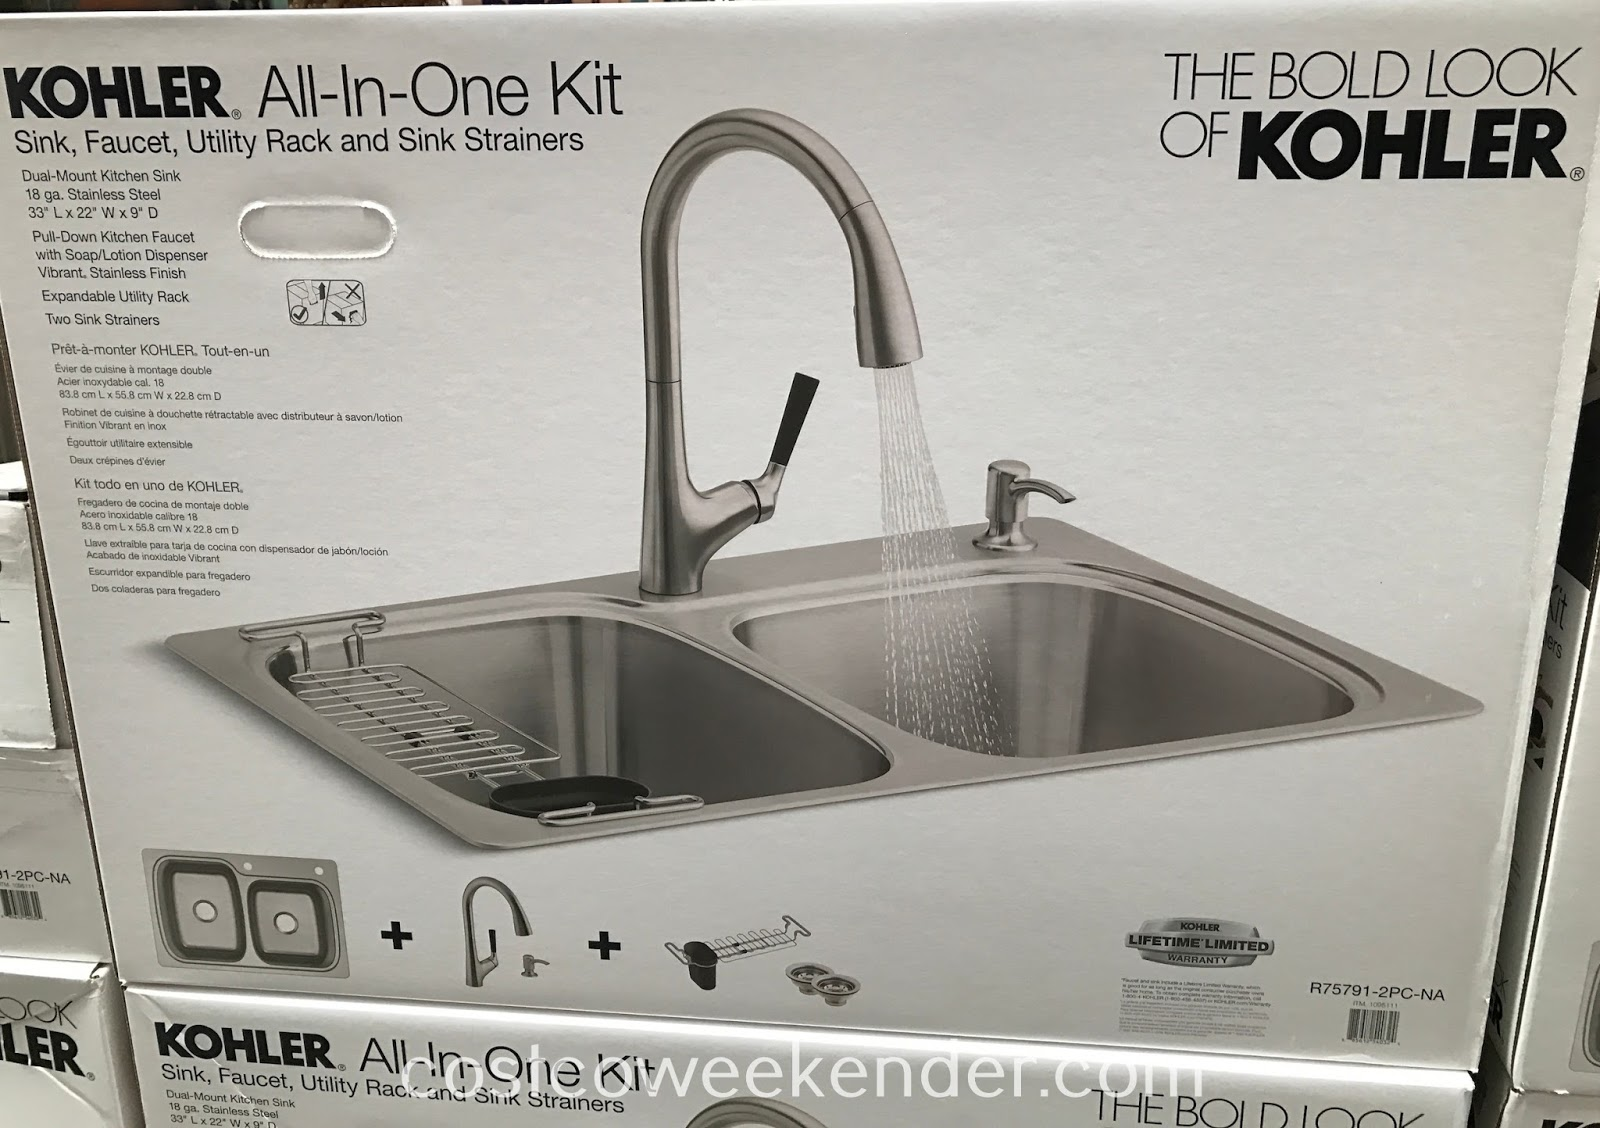 stainless steel sink and faucet kit